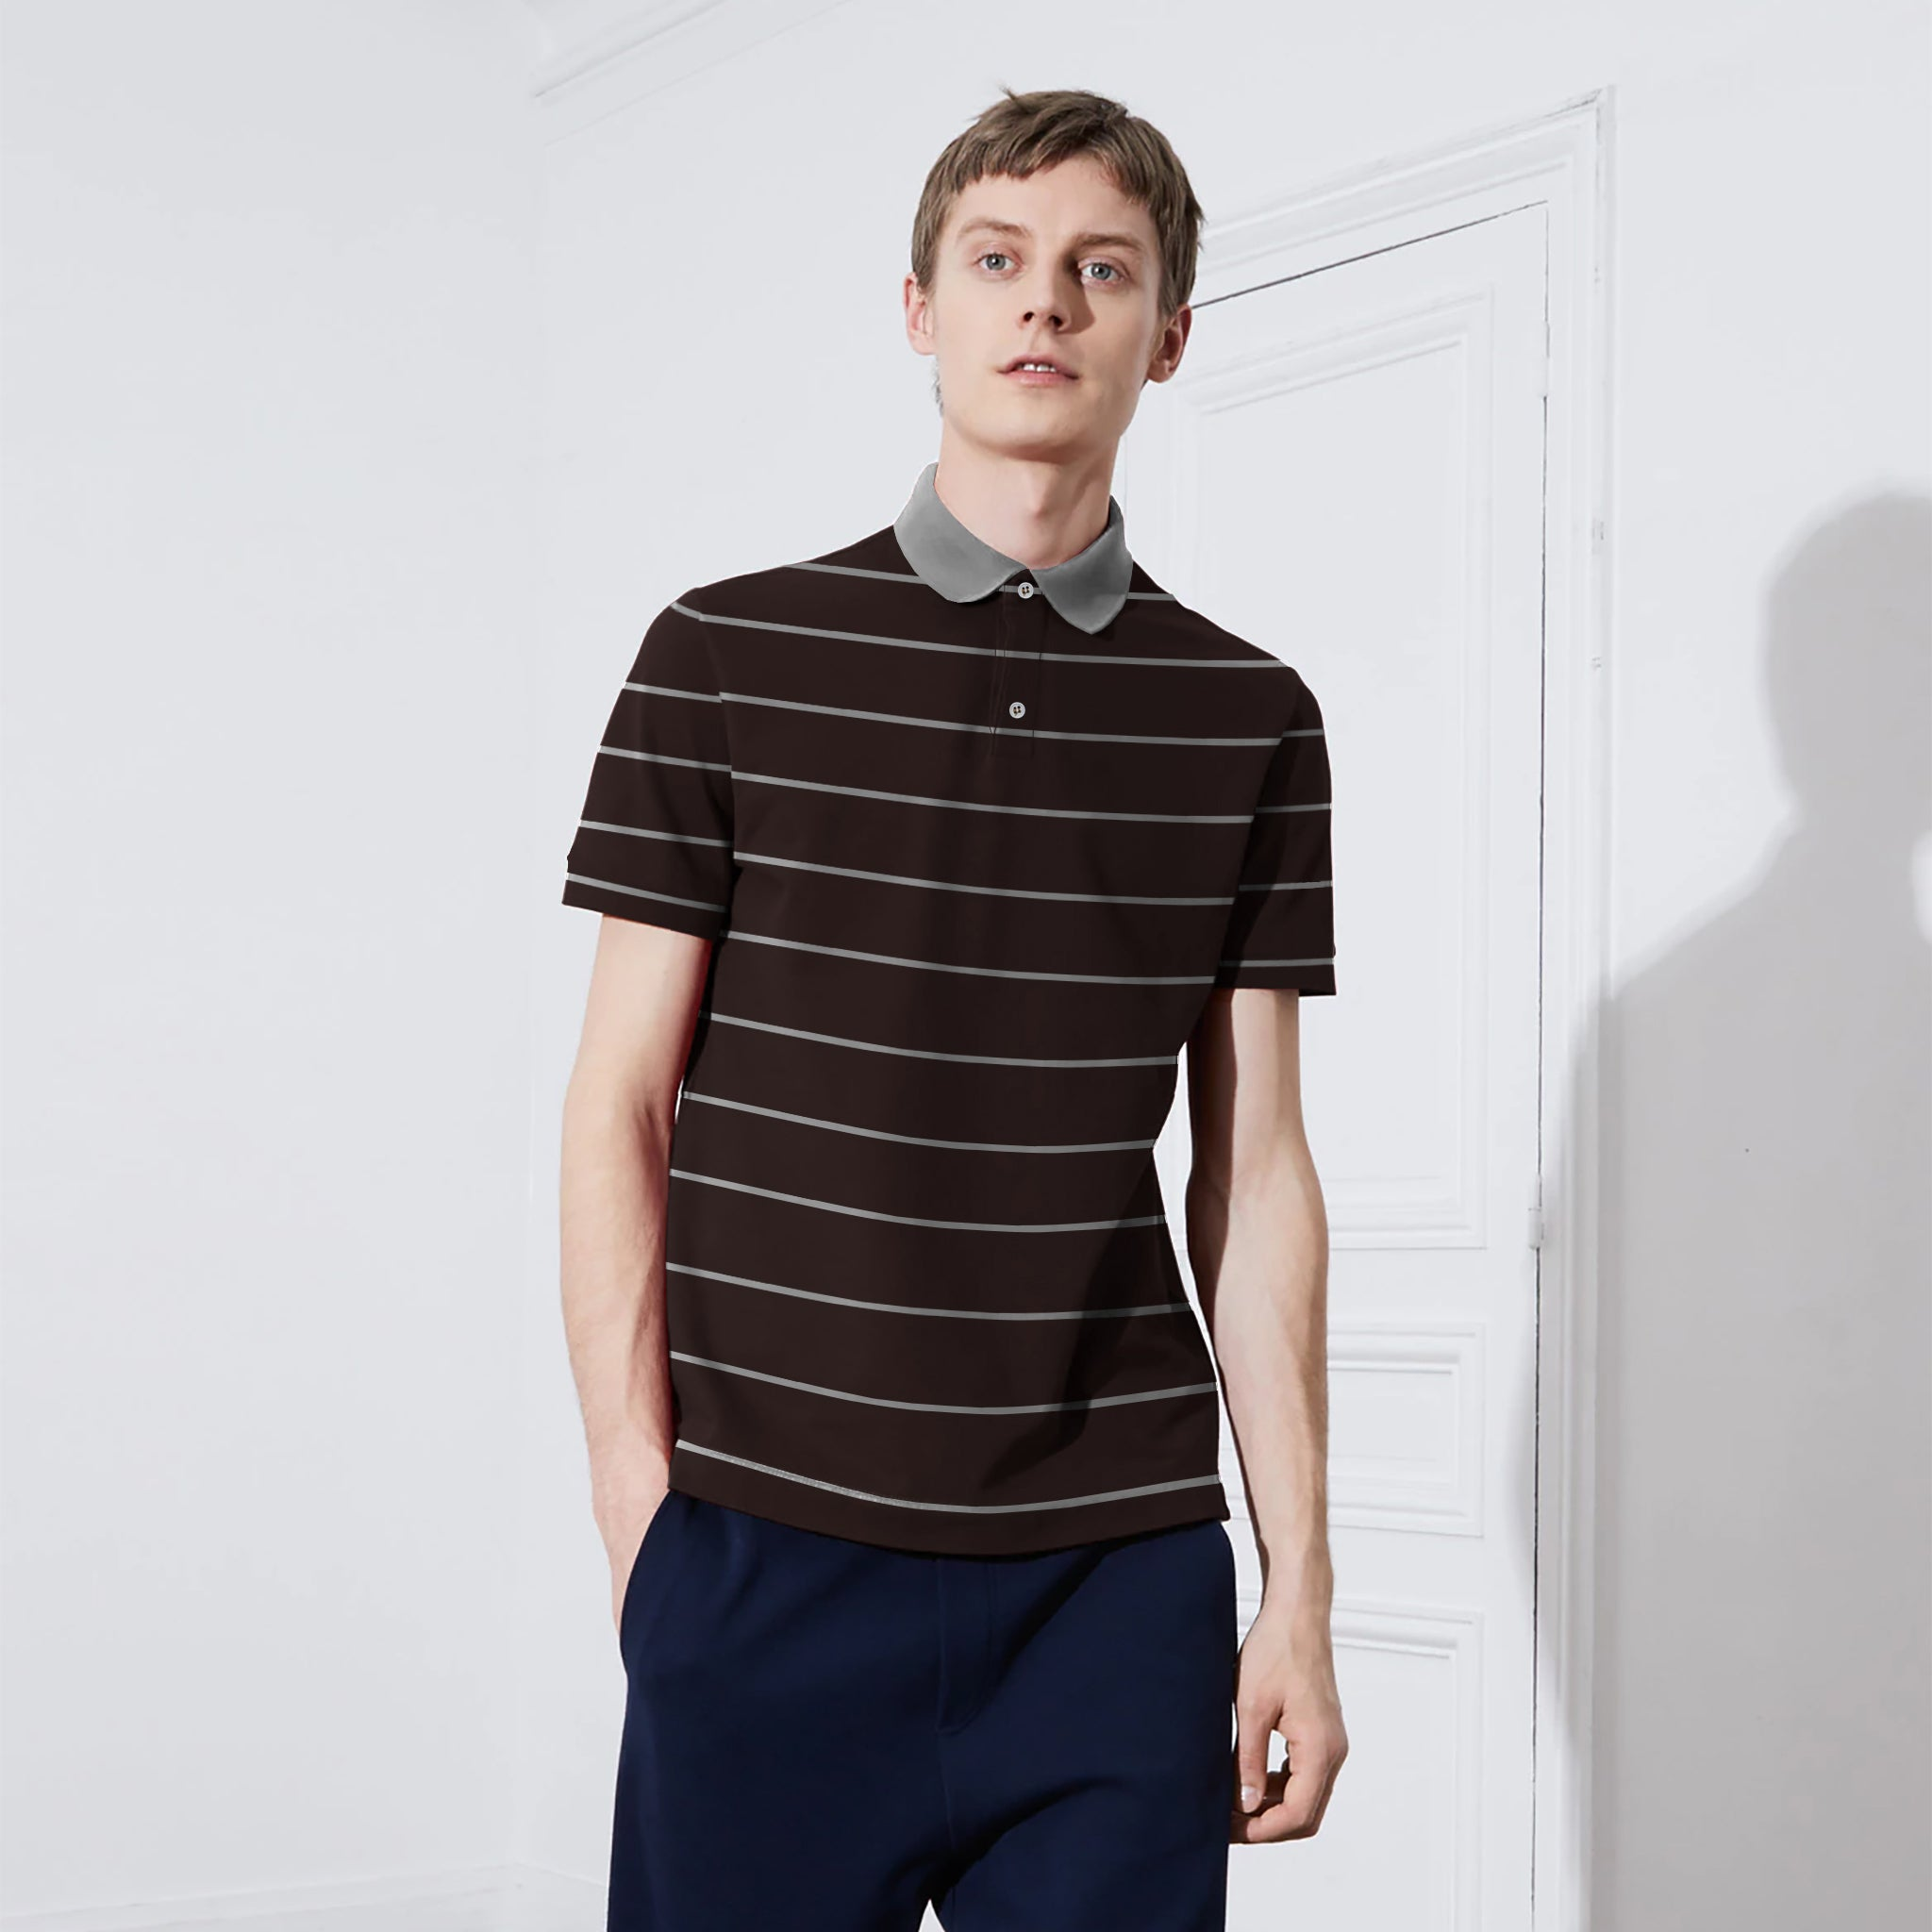 8f7b924c2 Chams Authentic Single Jersey Polo Shirt For Men-Dark Brown With Gray  Stripes-NA1001